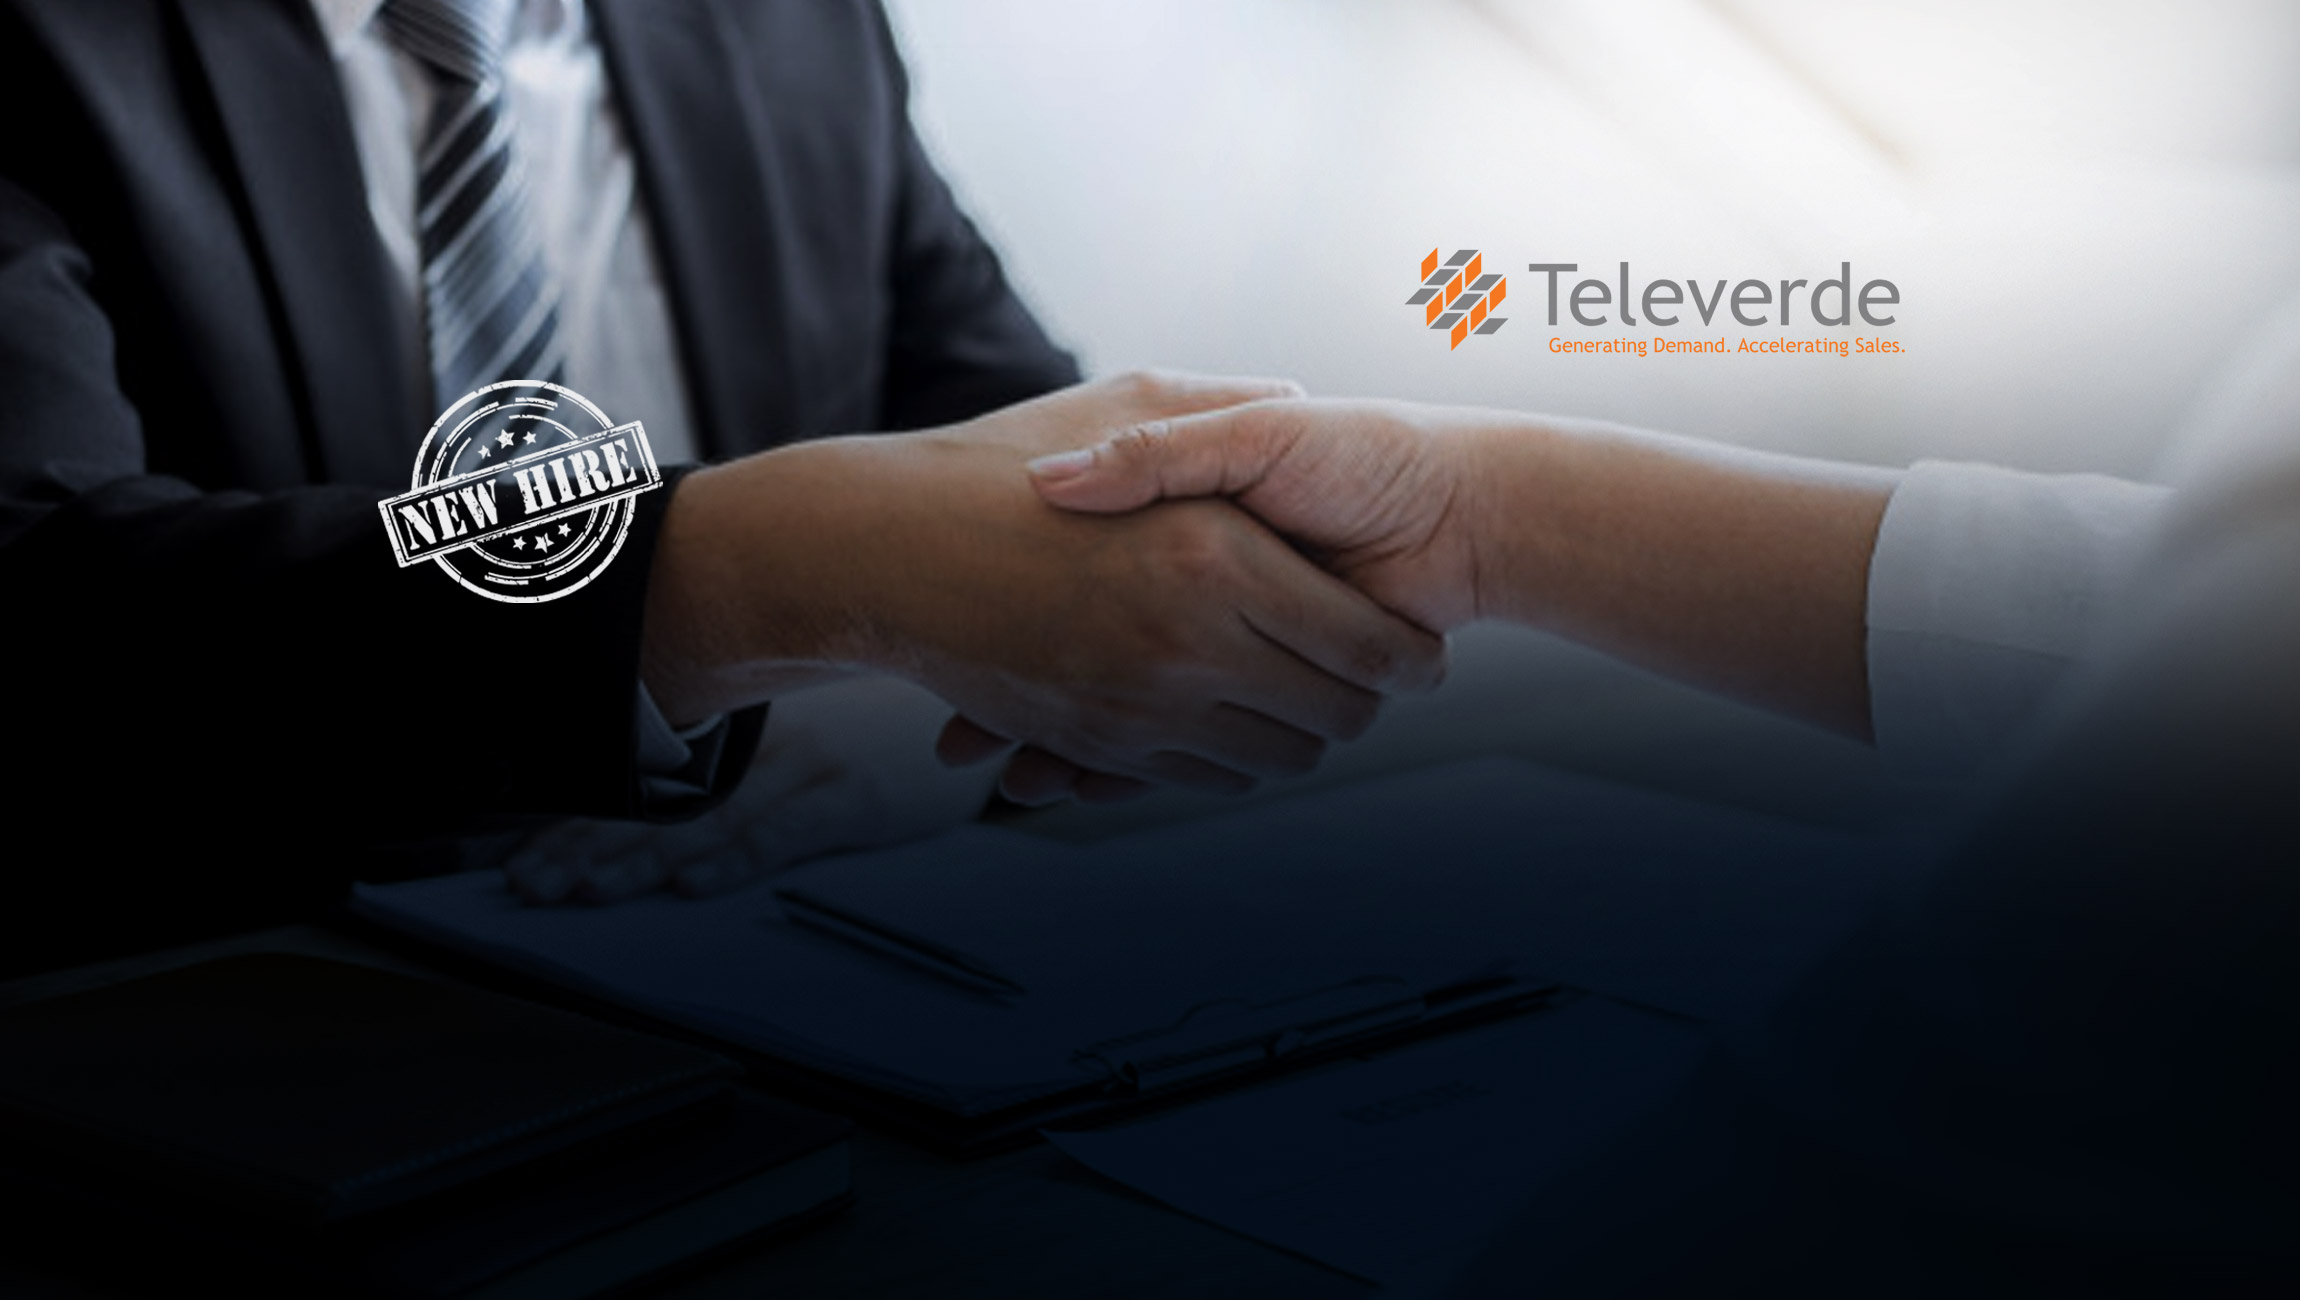 Televerde Announces Q3 2020 Contract Wins, Expansion of Strategic Partnerships